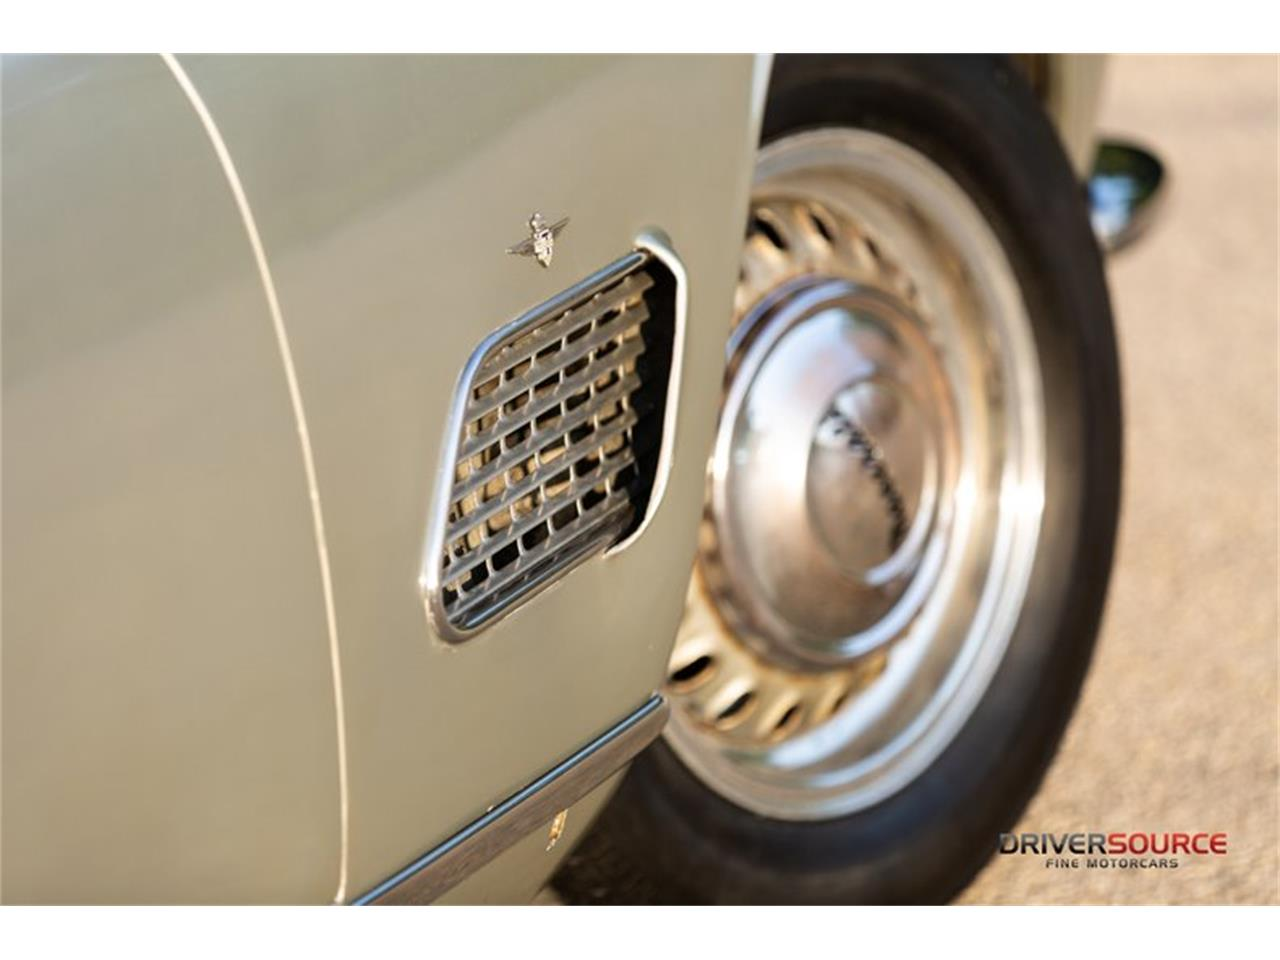 Large Picture of Classic 1962 Maserati 3500 located in Houston Texas - $278,500.00 Offered by Driversource - OCR7